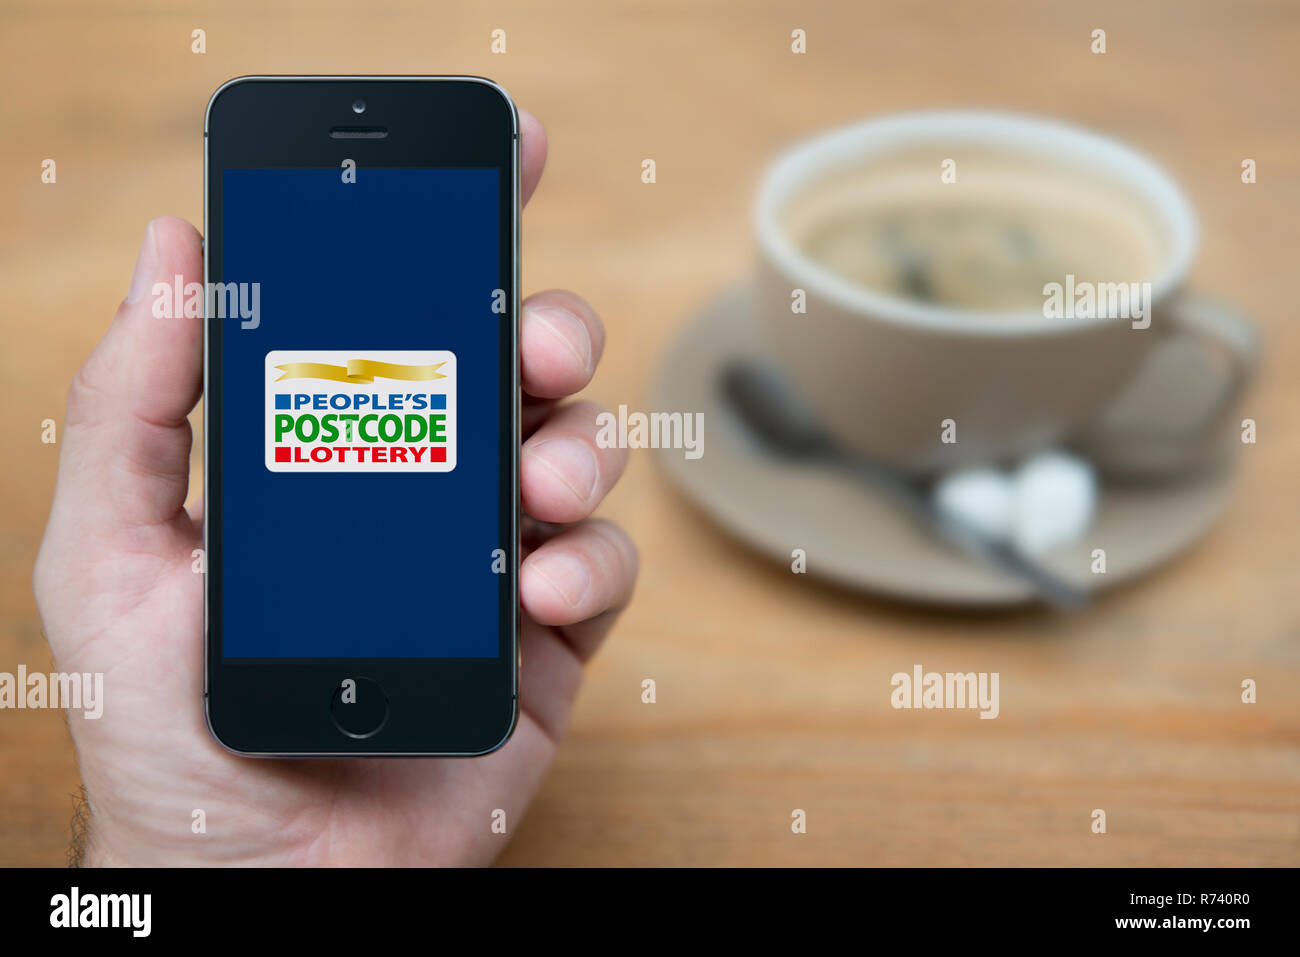 A man looks at his iPhone which displays the People's Postcode Lottery logo (Editorial use only). - Stock Image